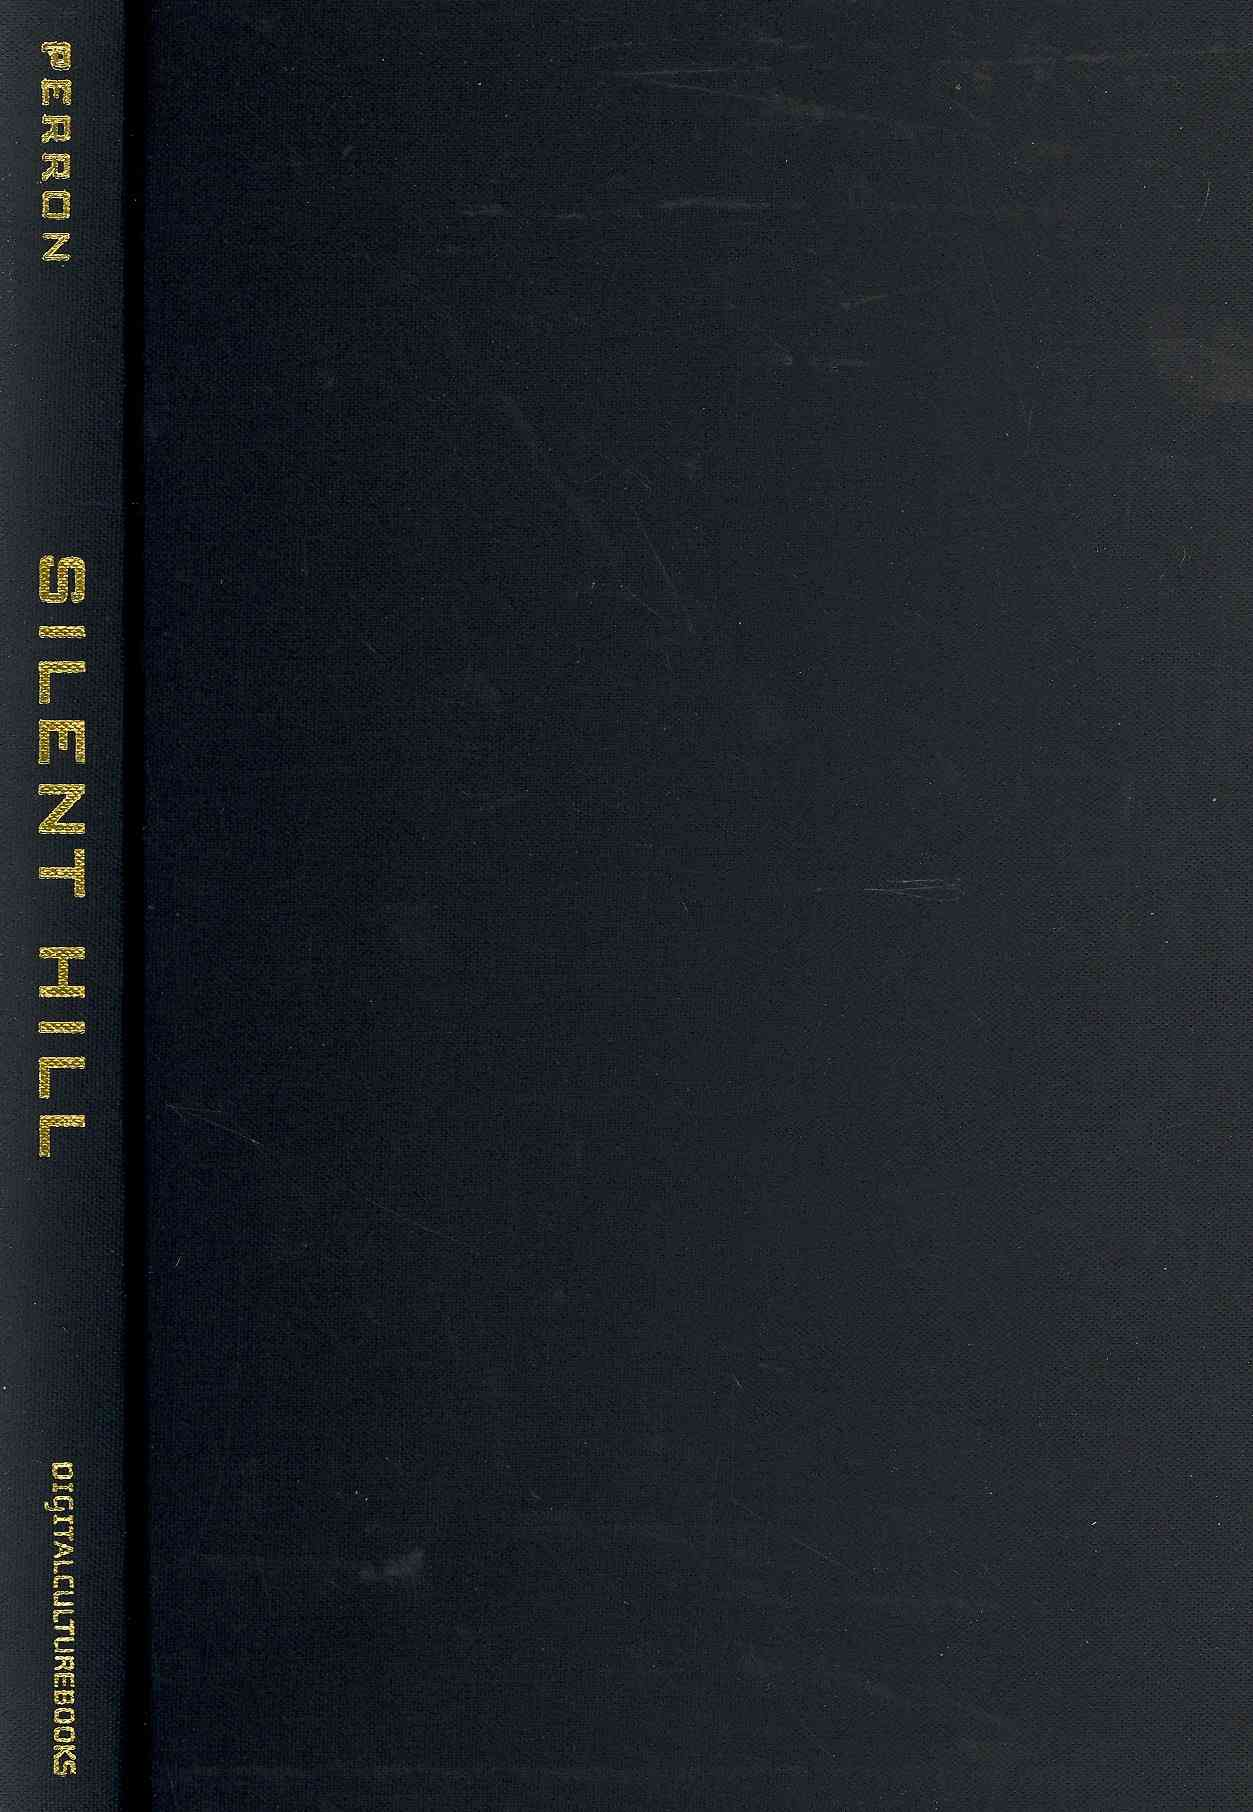 Silent Hill (Hardcover)